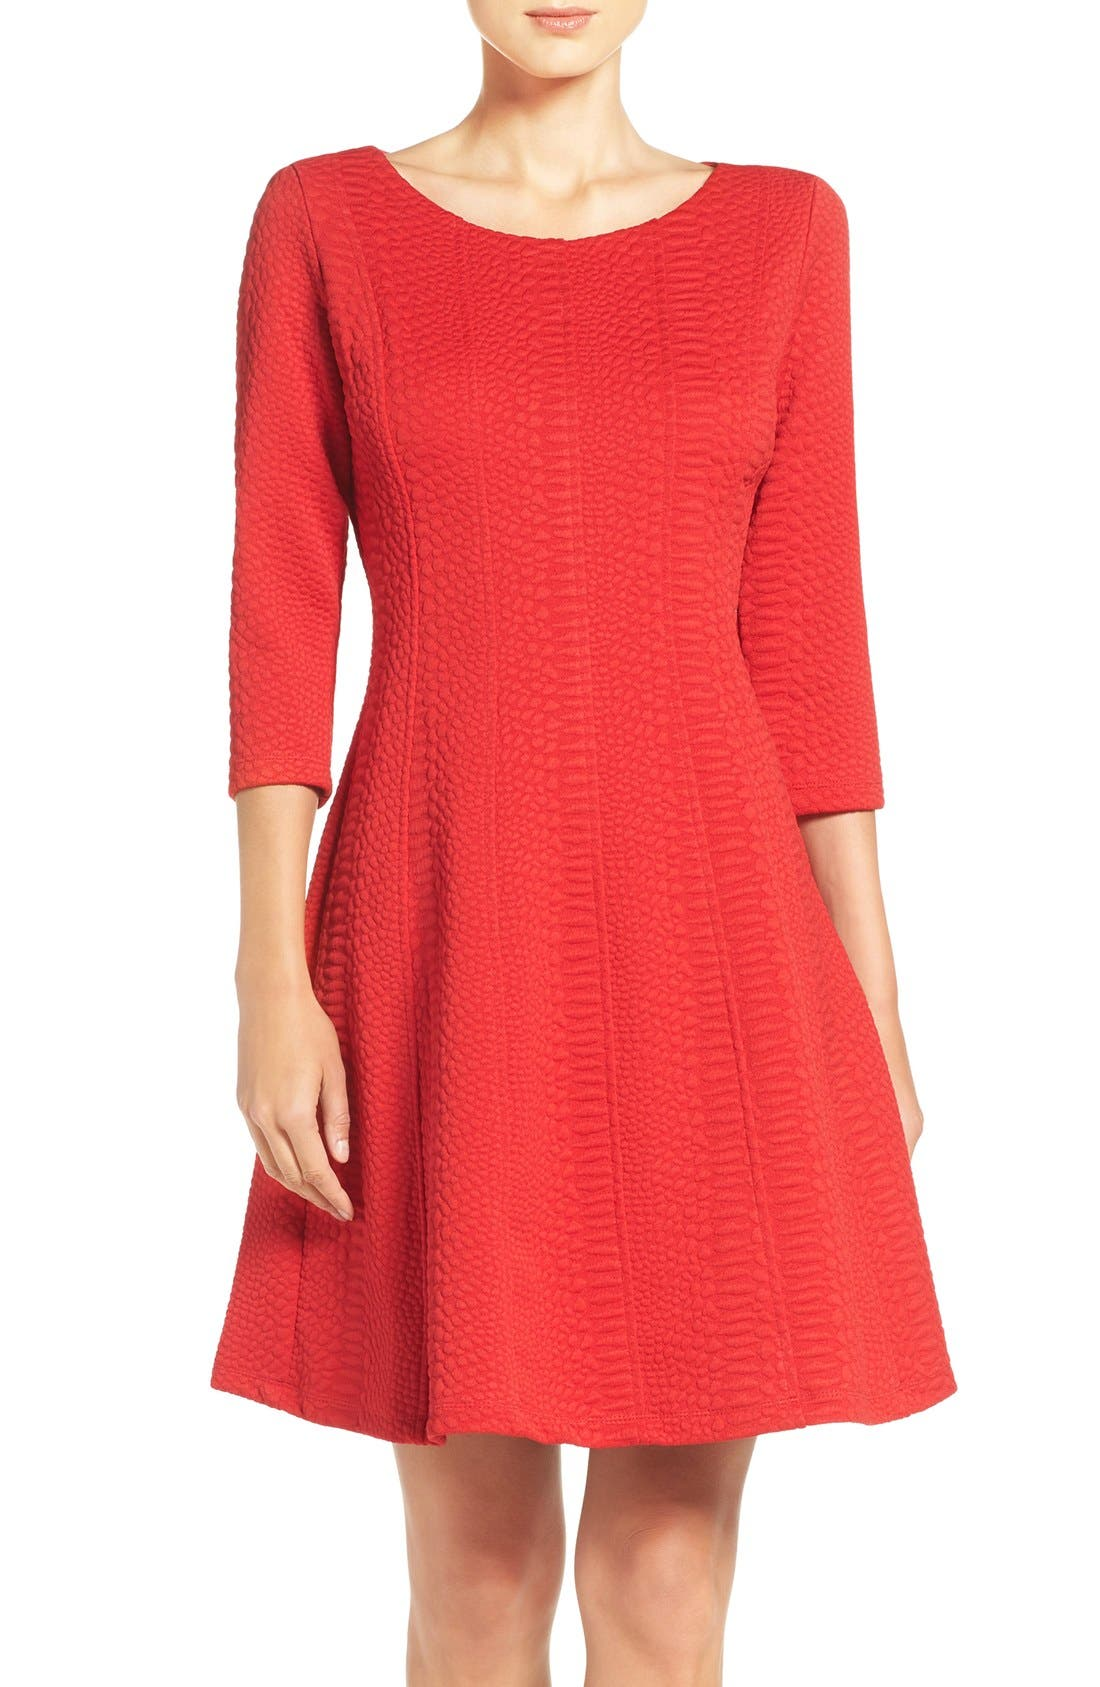 Jacquard Knit Fit & Flare Dress,                             Main thumbnail 1, color,                             628